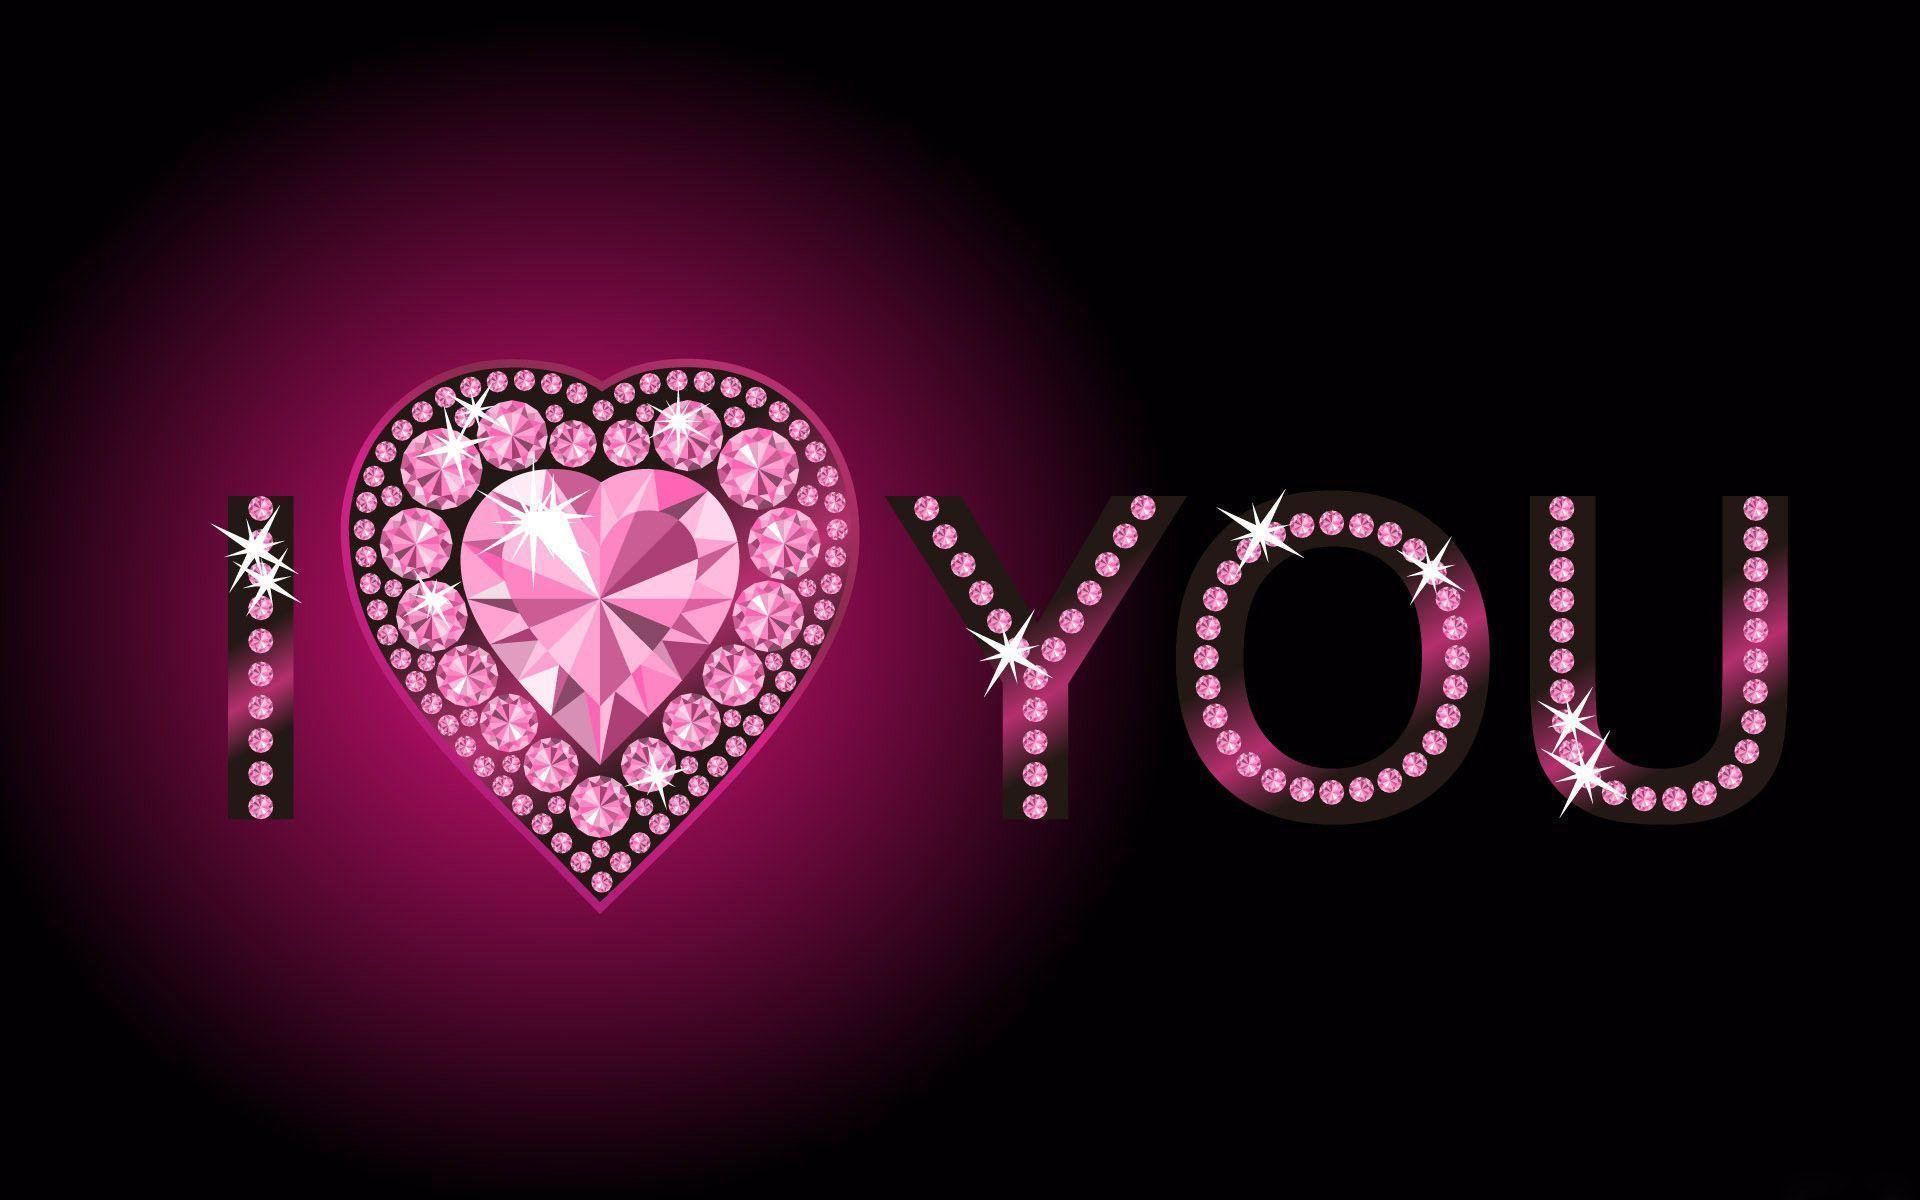 Love You Janu Wallpaper : I Love You Image Wallpapers - Wallpaper cave